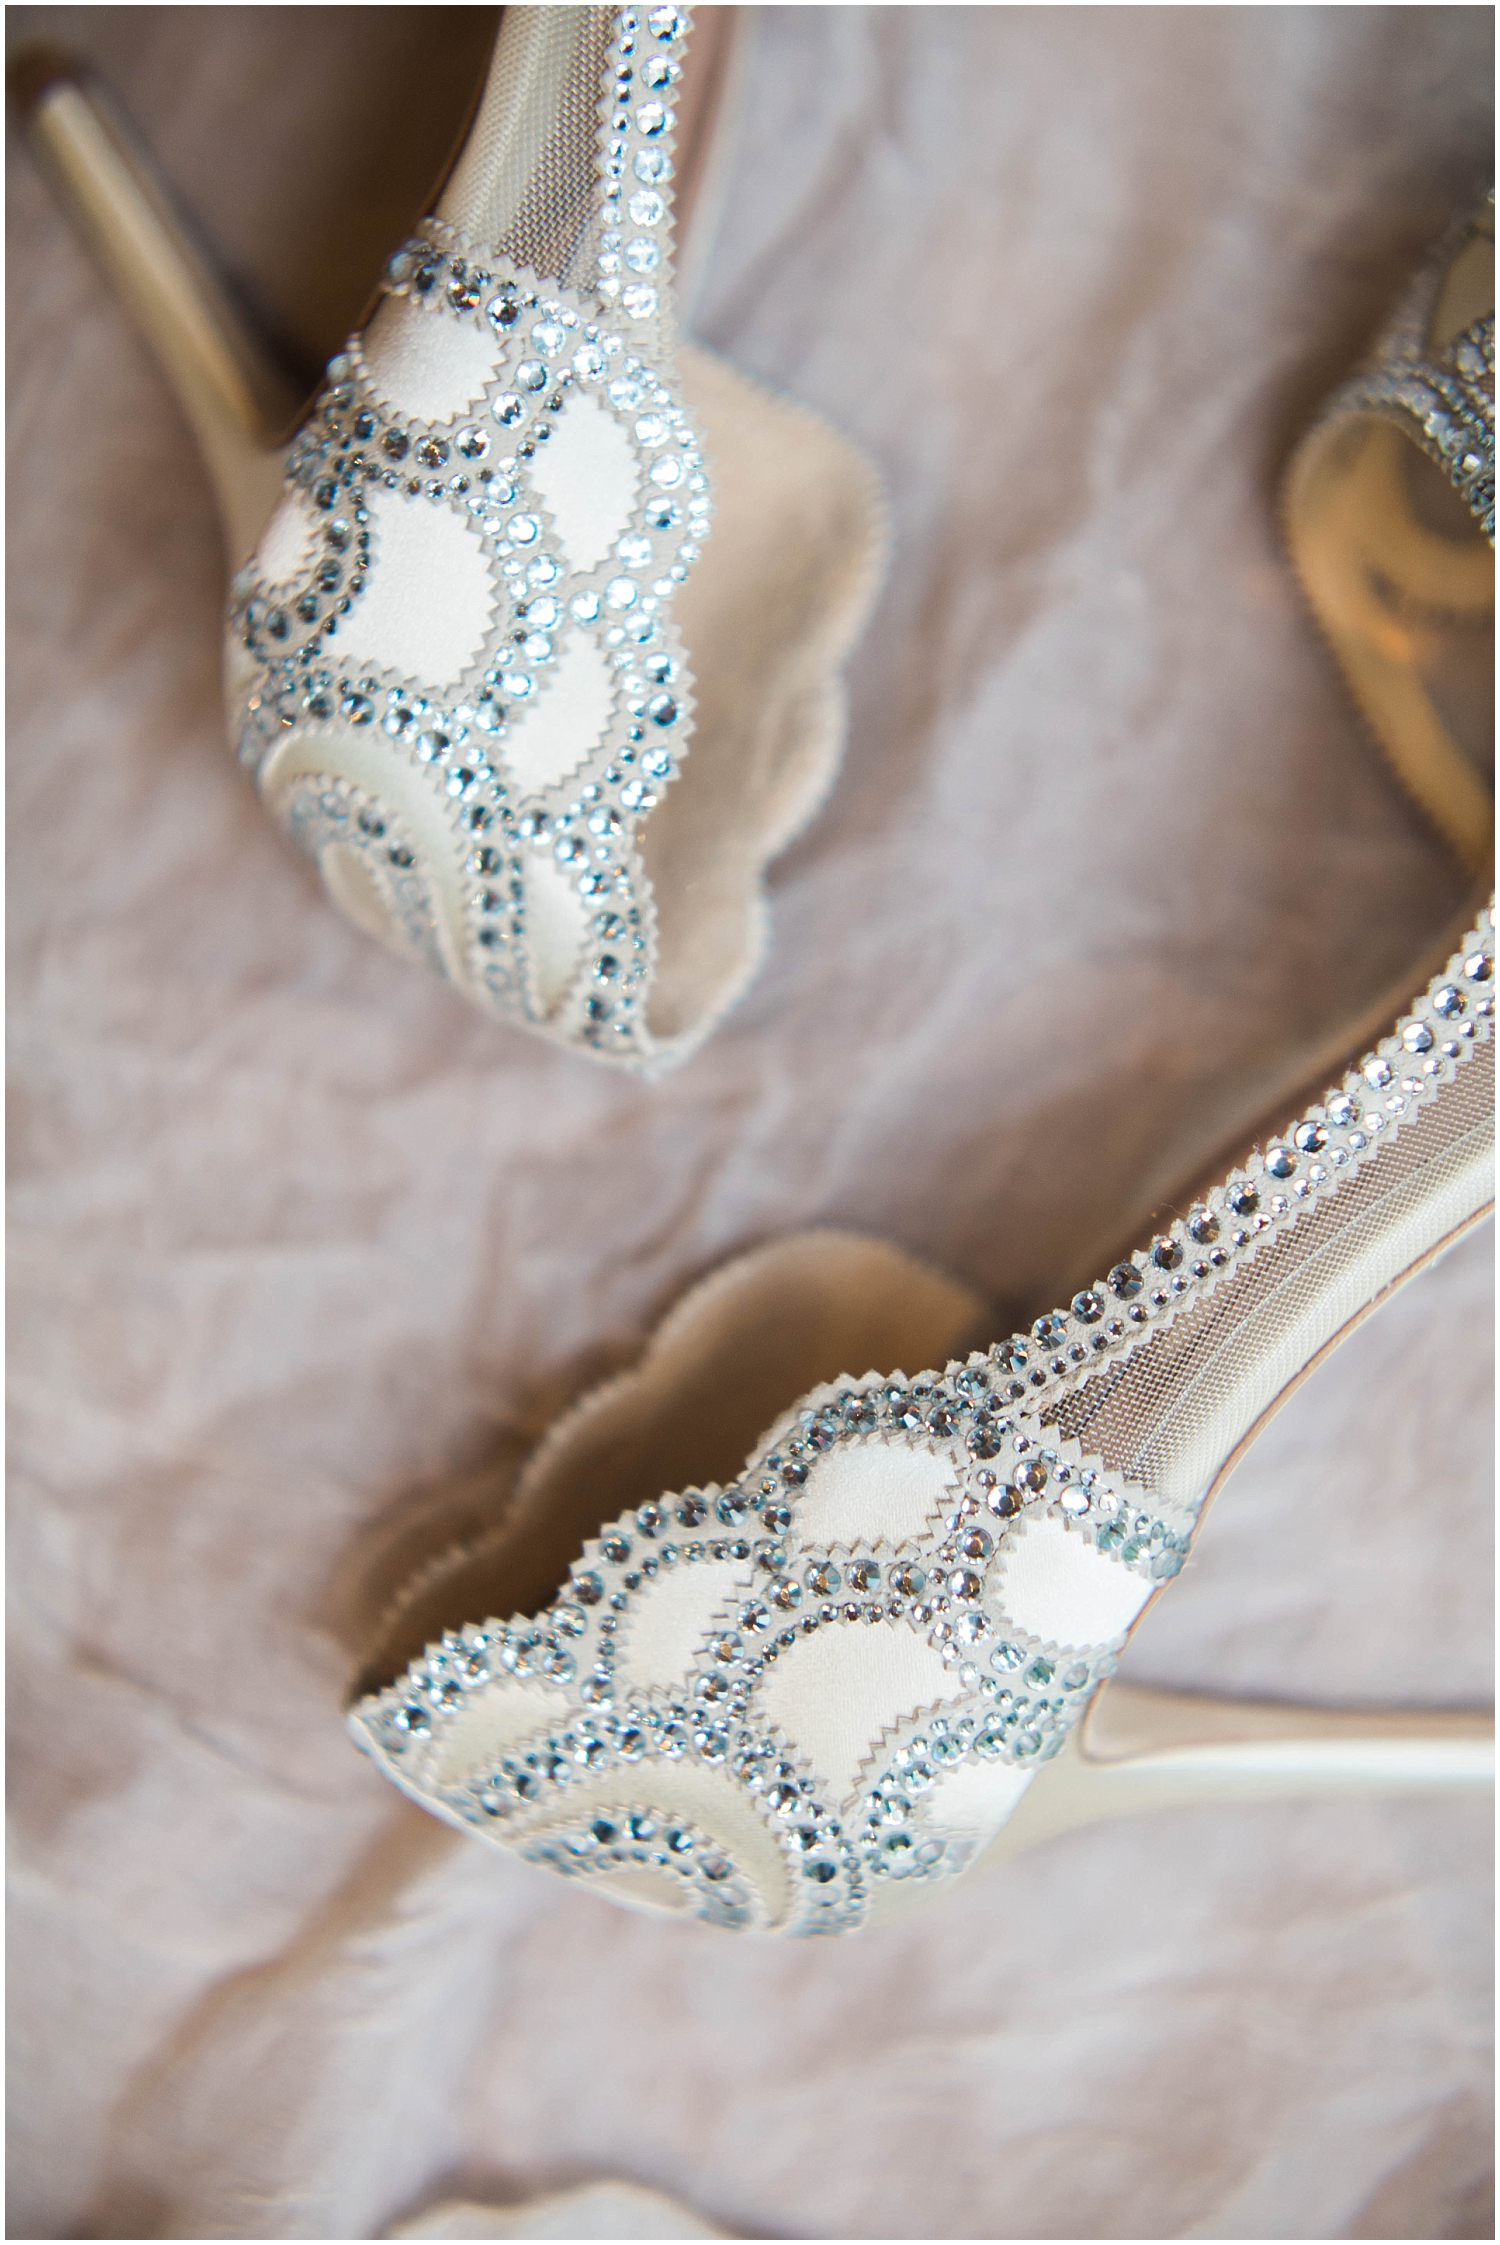 the bride's wedding shoes